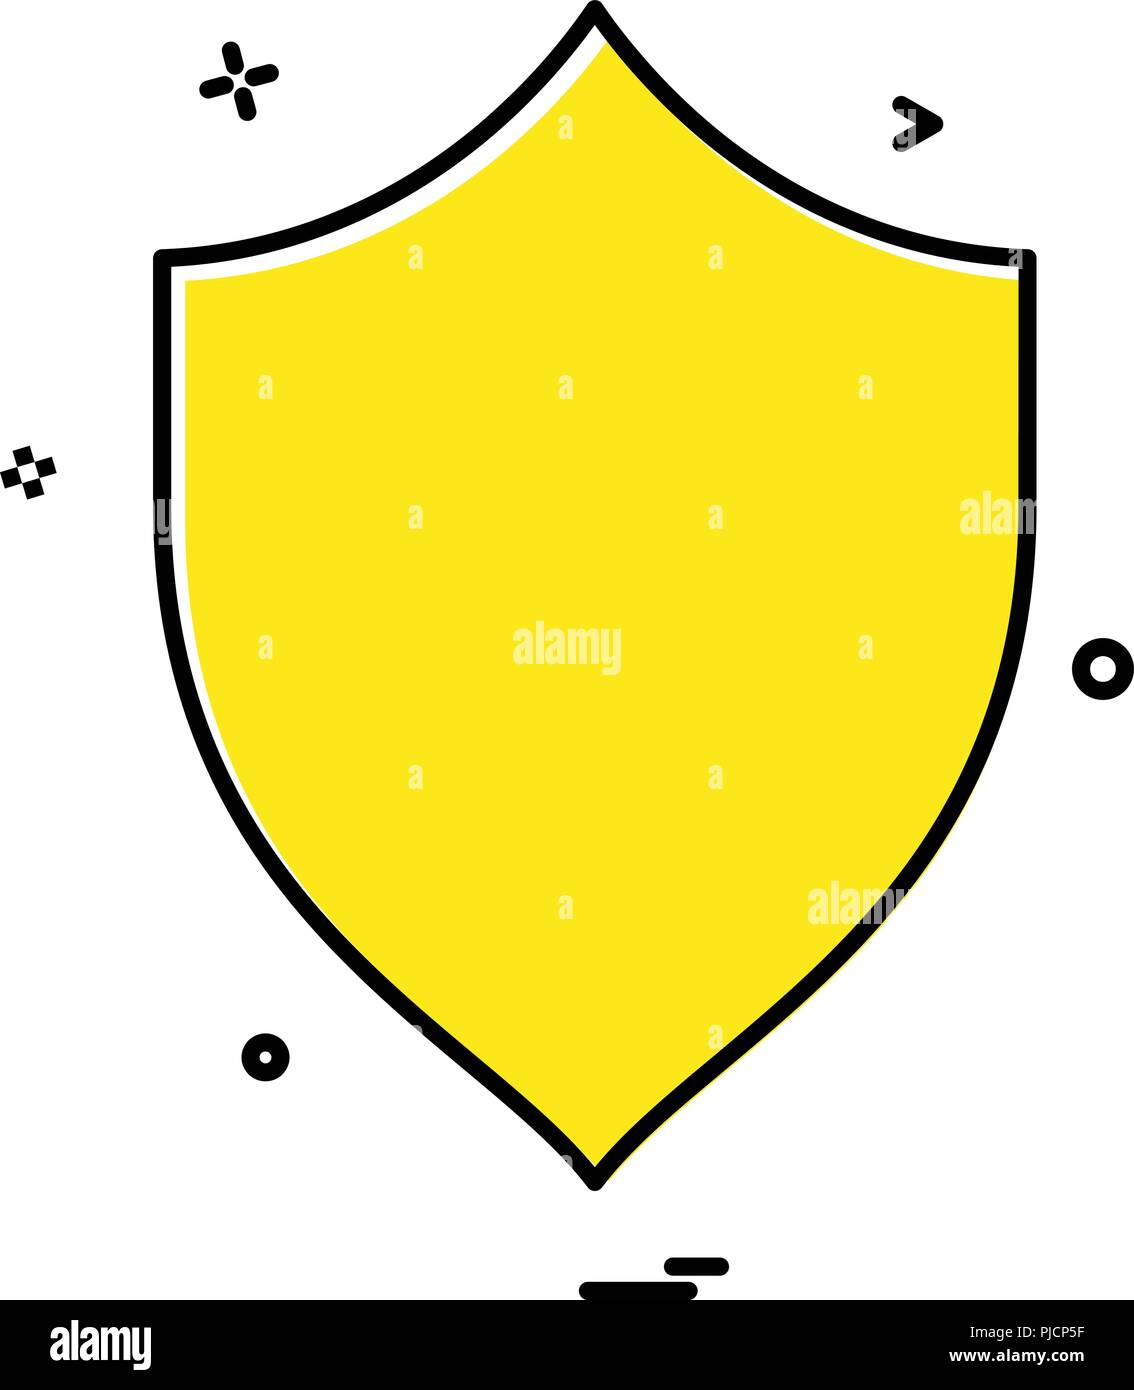 security badge saftey protect icon stock vector art illustration